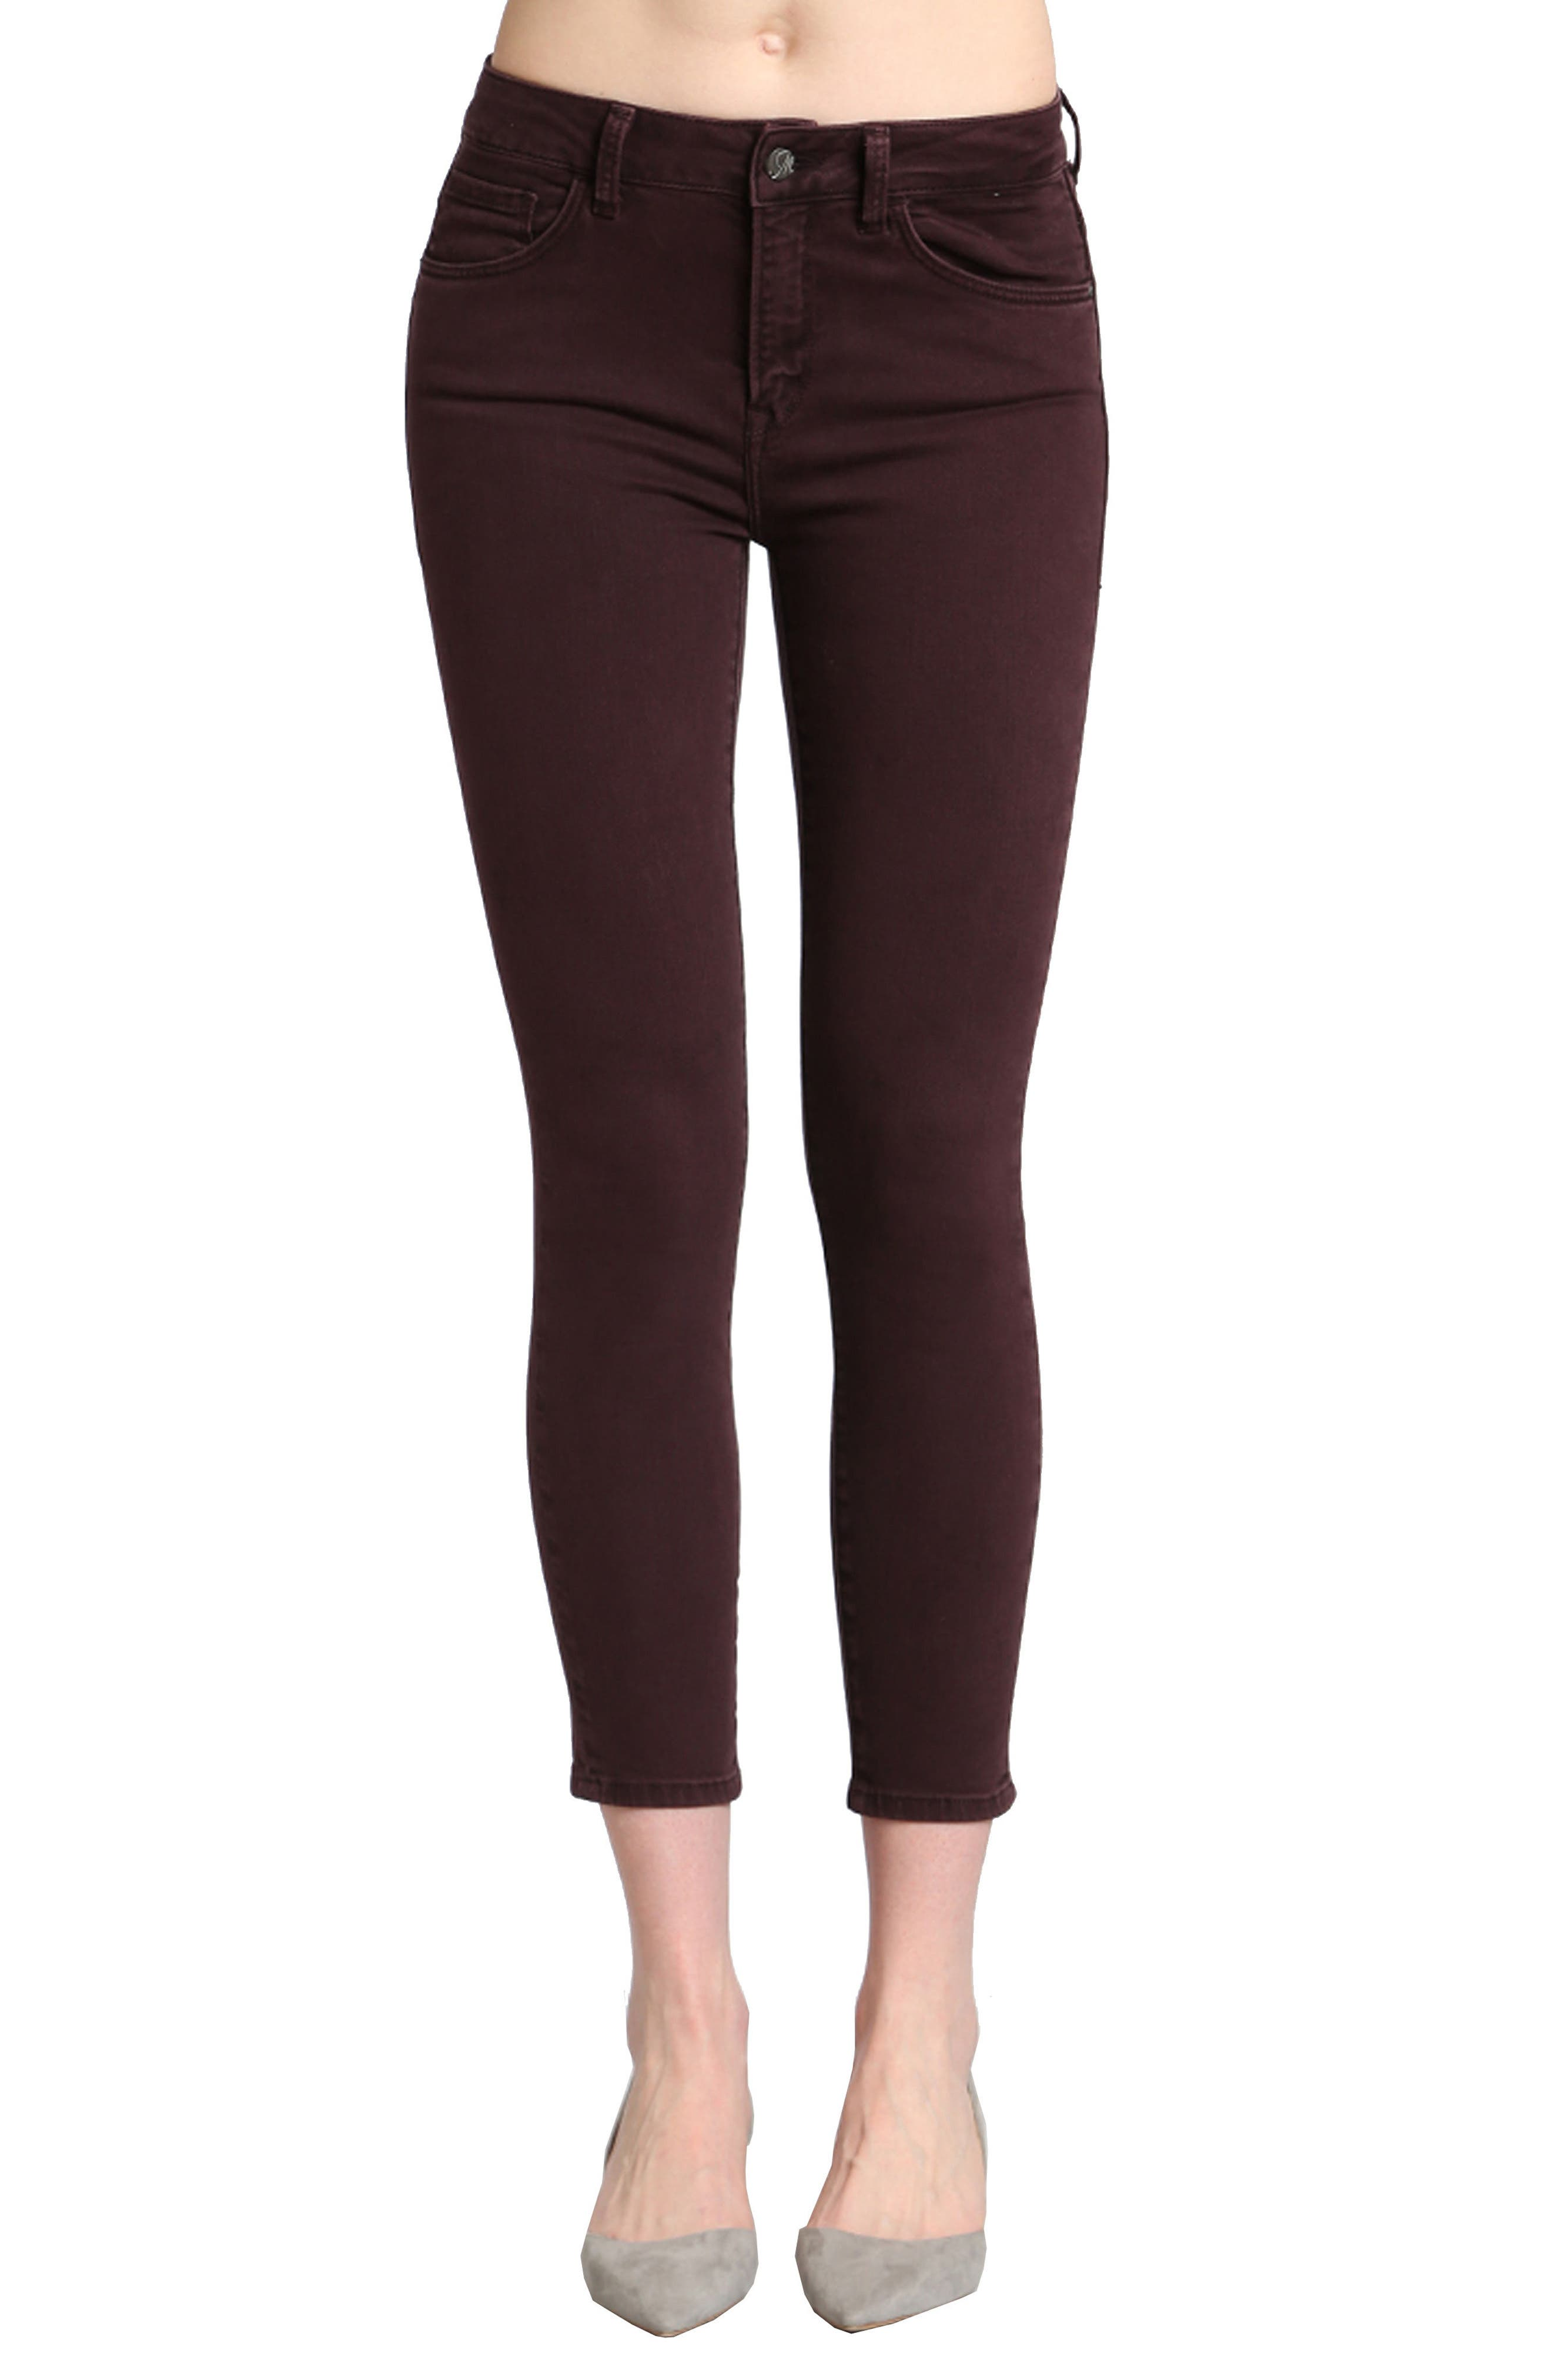 Tess Skinny Jeans,                         Main,                         color, Wine